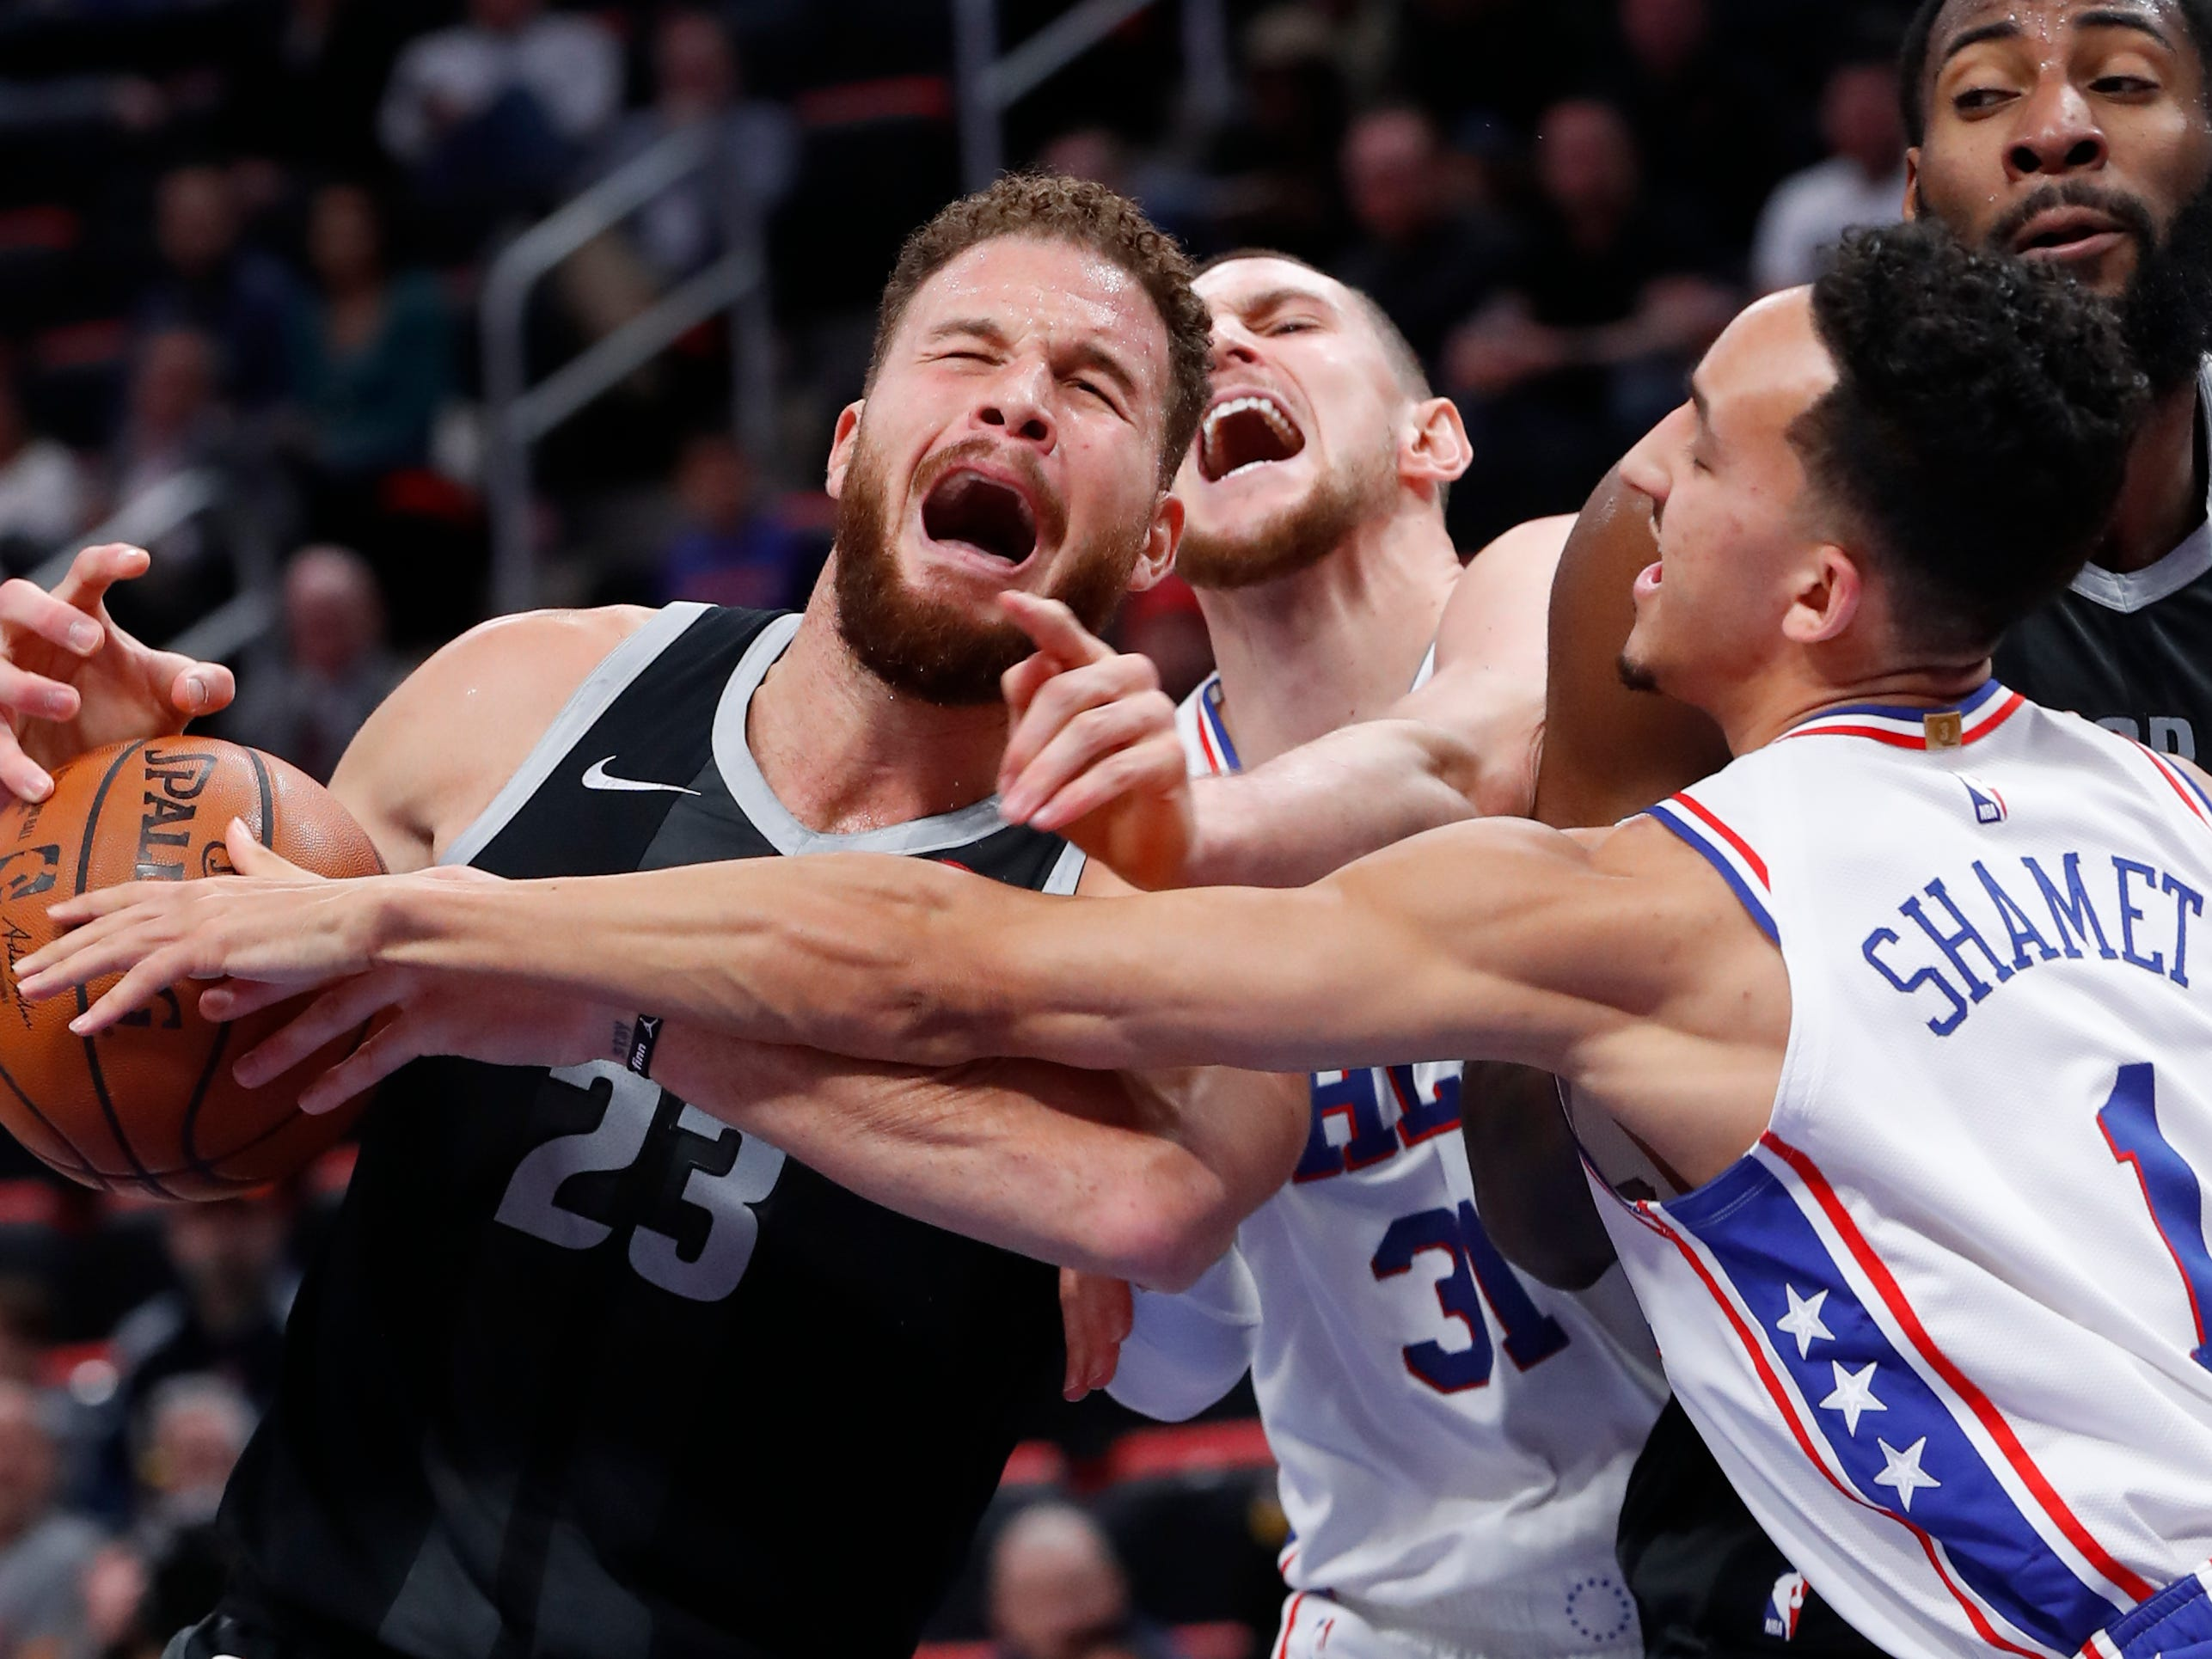 Detroit Pistons forward Blake Griffin (23) is fouled by Philadelphia 76ers forward Mike Muscala (31) as Landry Shamet (1) defends in the first half.